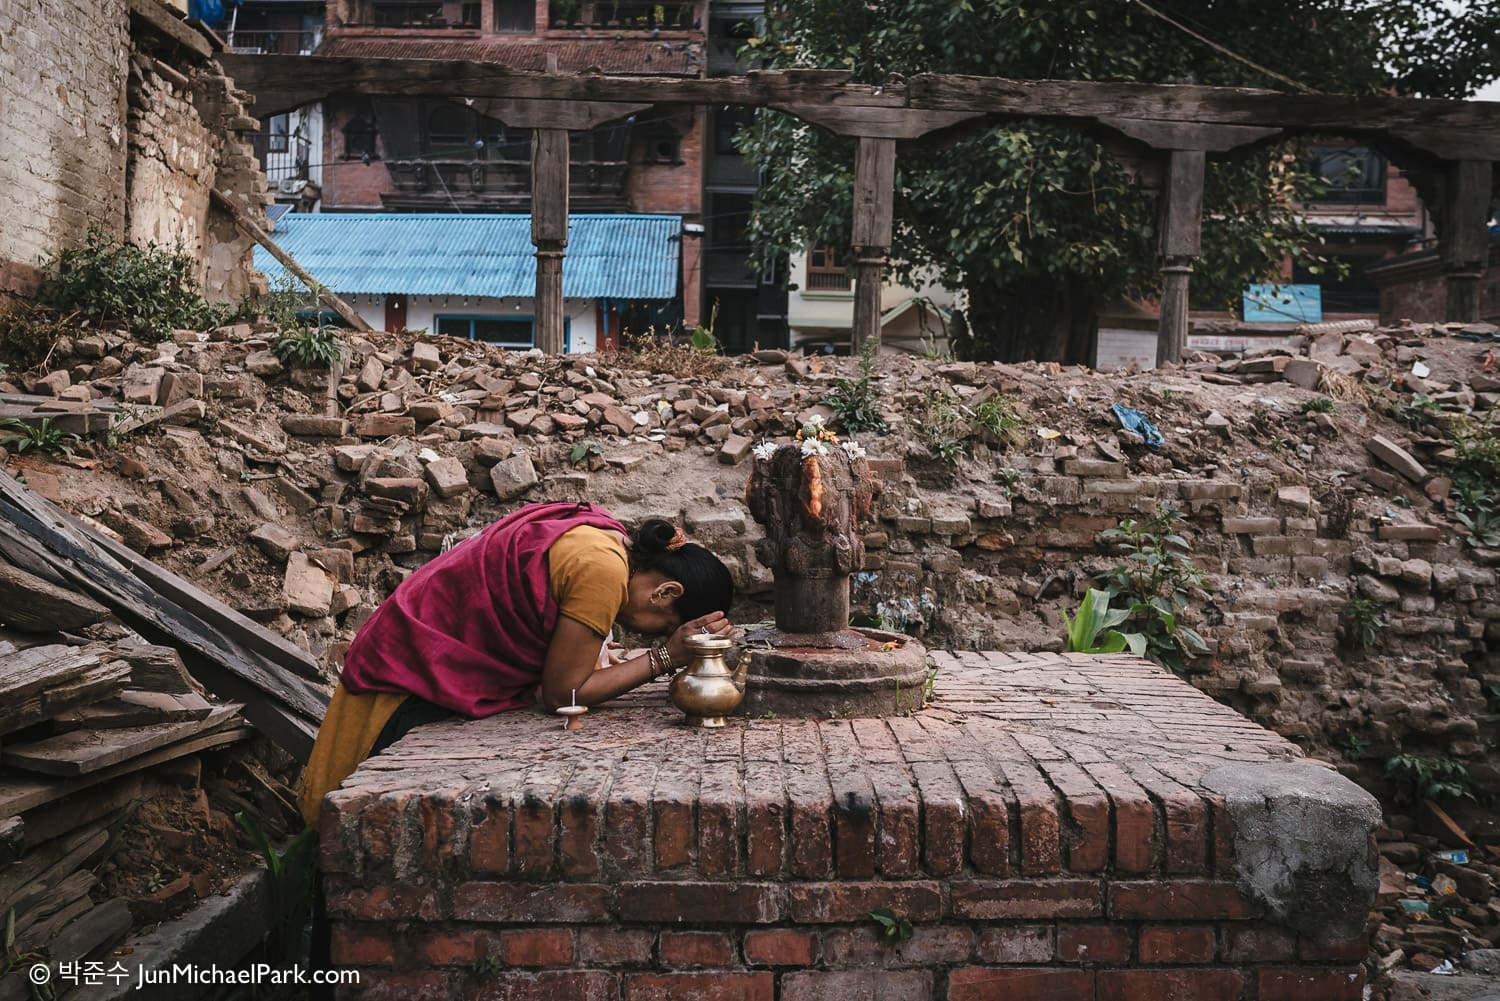 Early morning, a female resident prays in ruins at Kathmandu Durbar Square, Nepal. 02.11.15